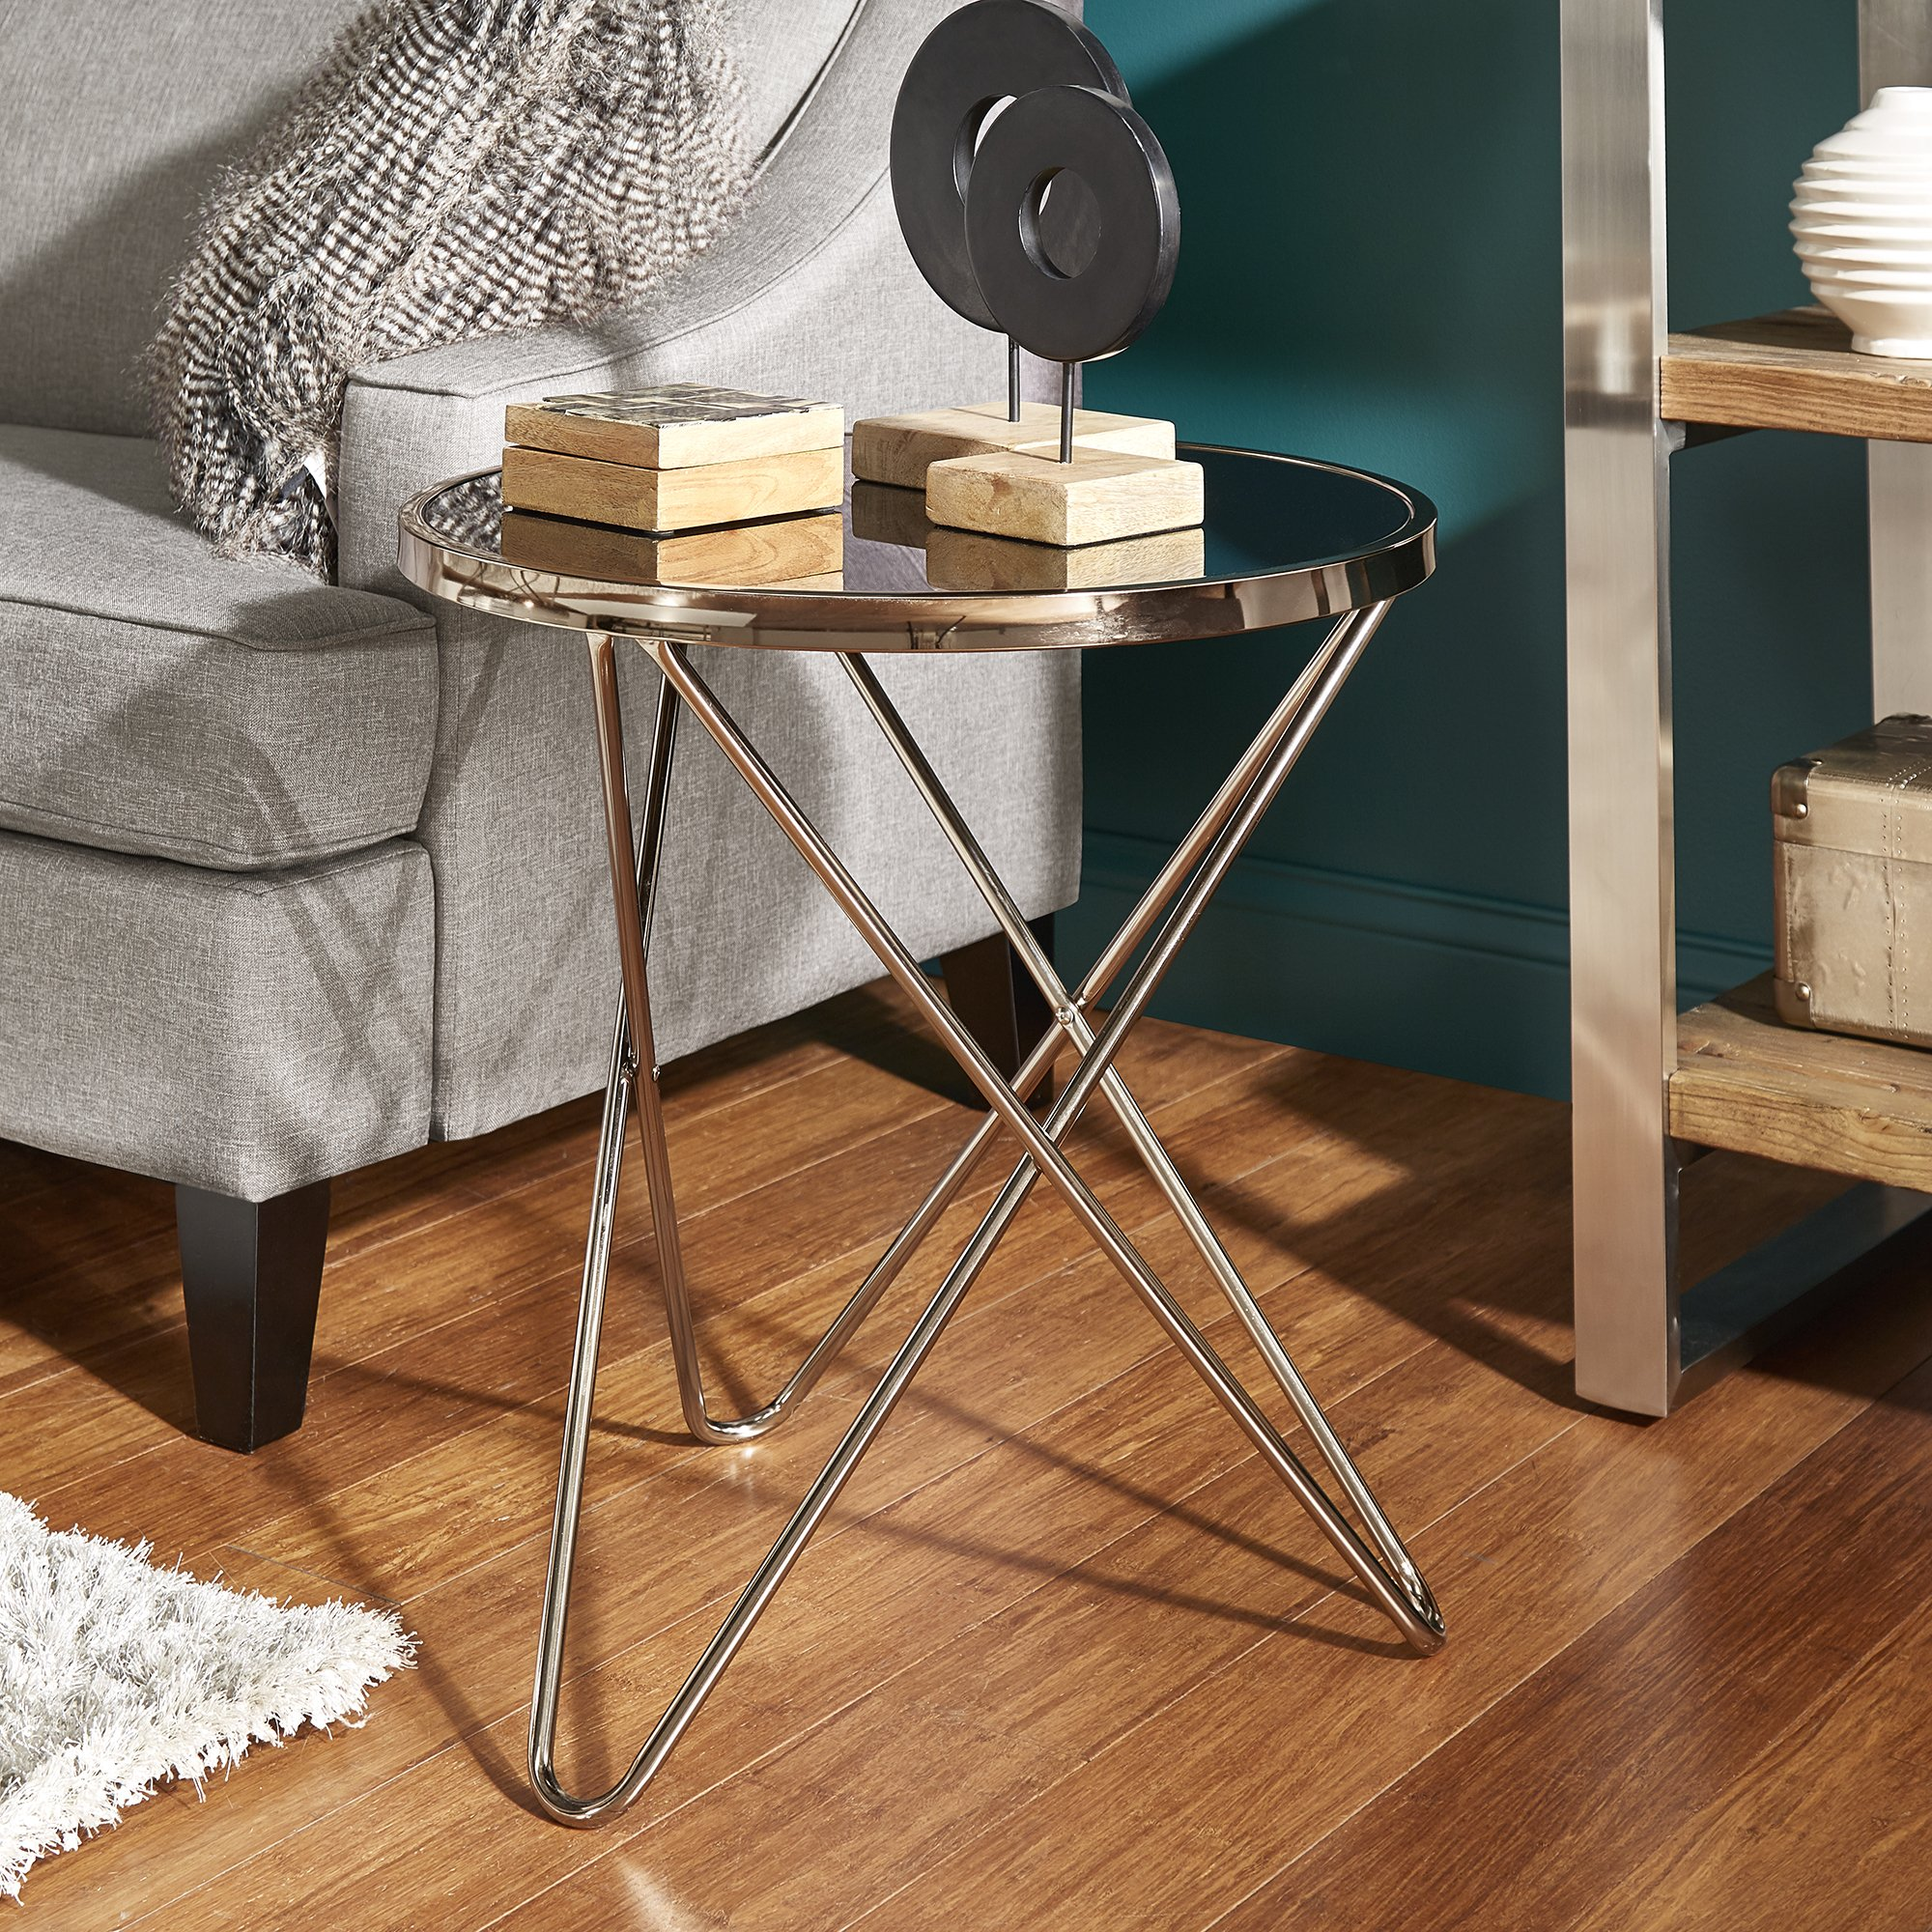 gabe champagne gold finish hairpin leg end table with black glass top inspire bold accent free shipping today industrial chinese garden stool antique lamp pine trestle bourse